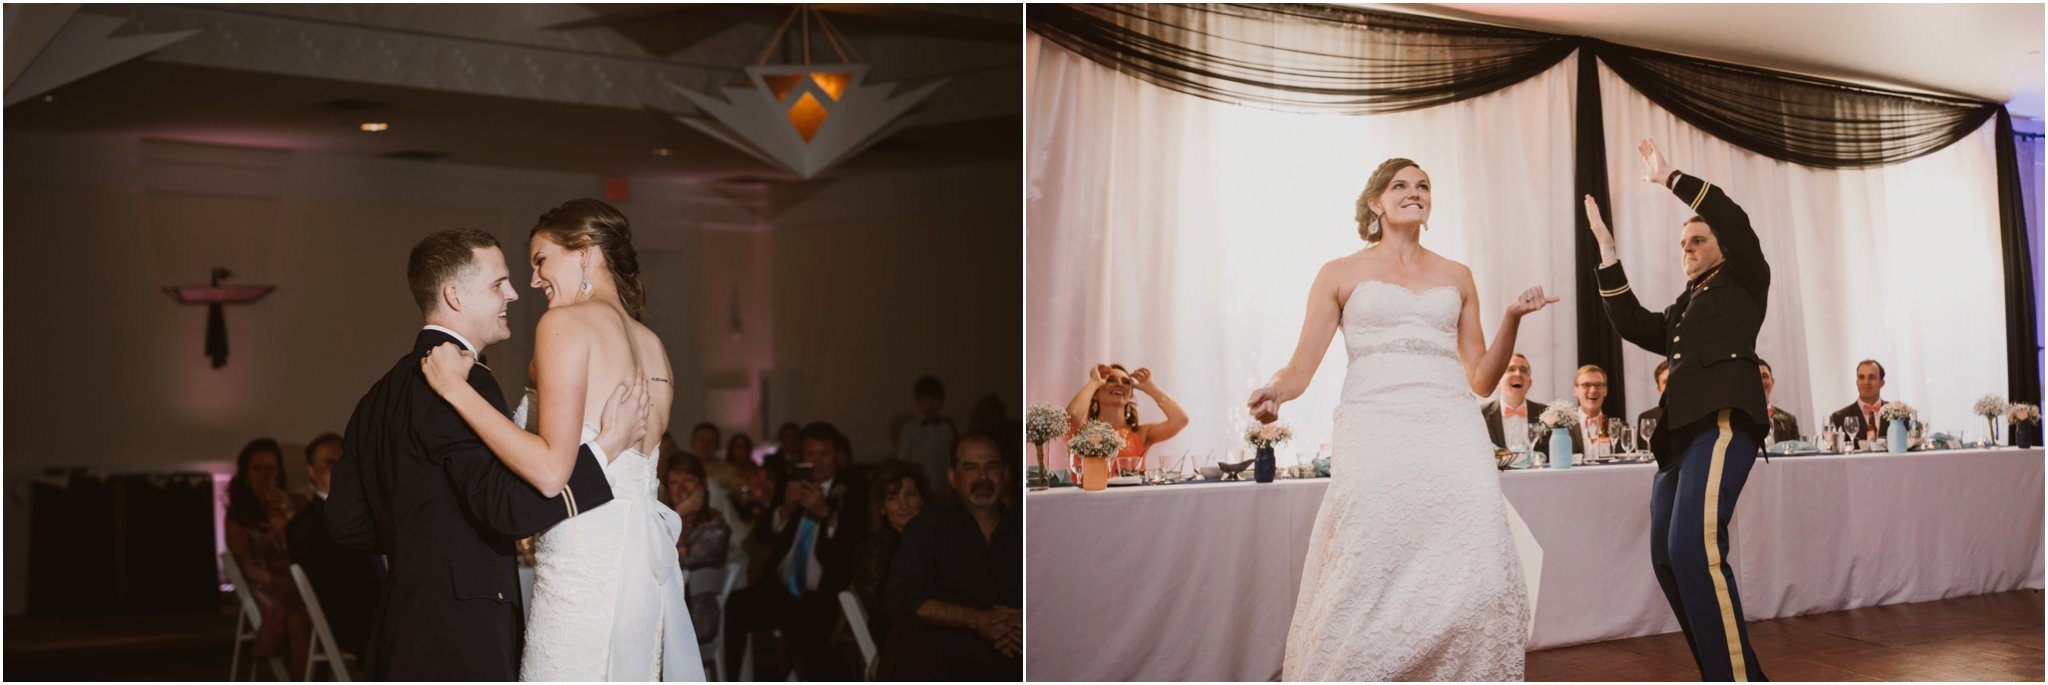 52Blue Rose Photography_ Albuquerque Wedding Photographer_ Santa Fe Wedding Photographers